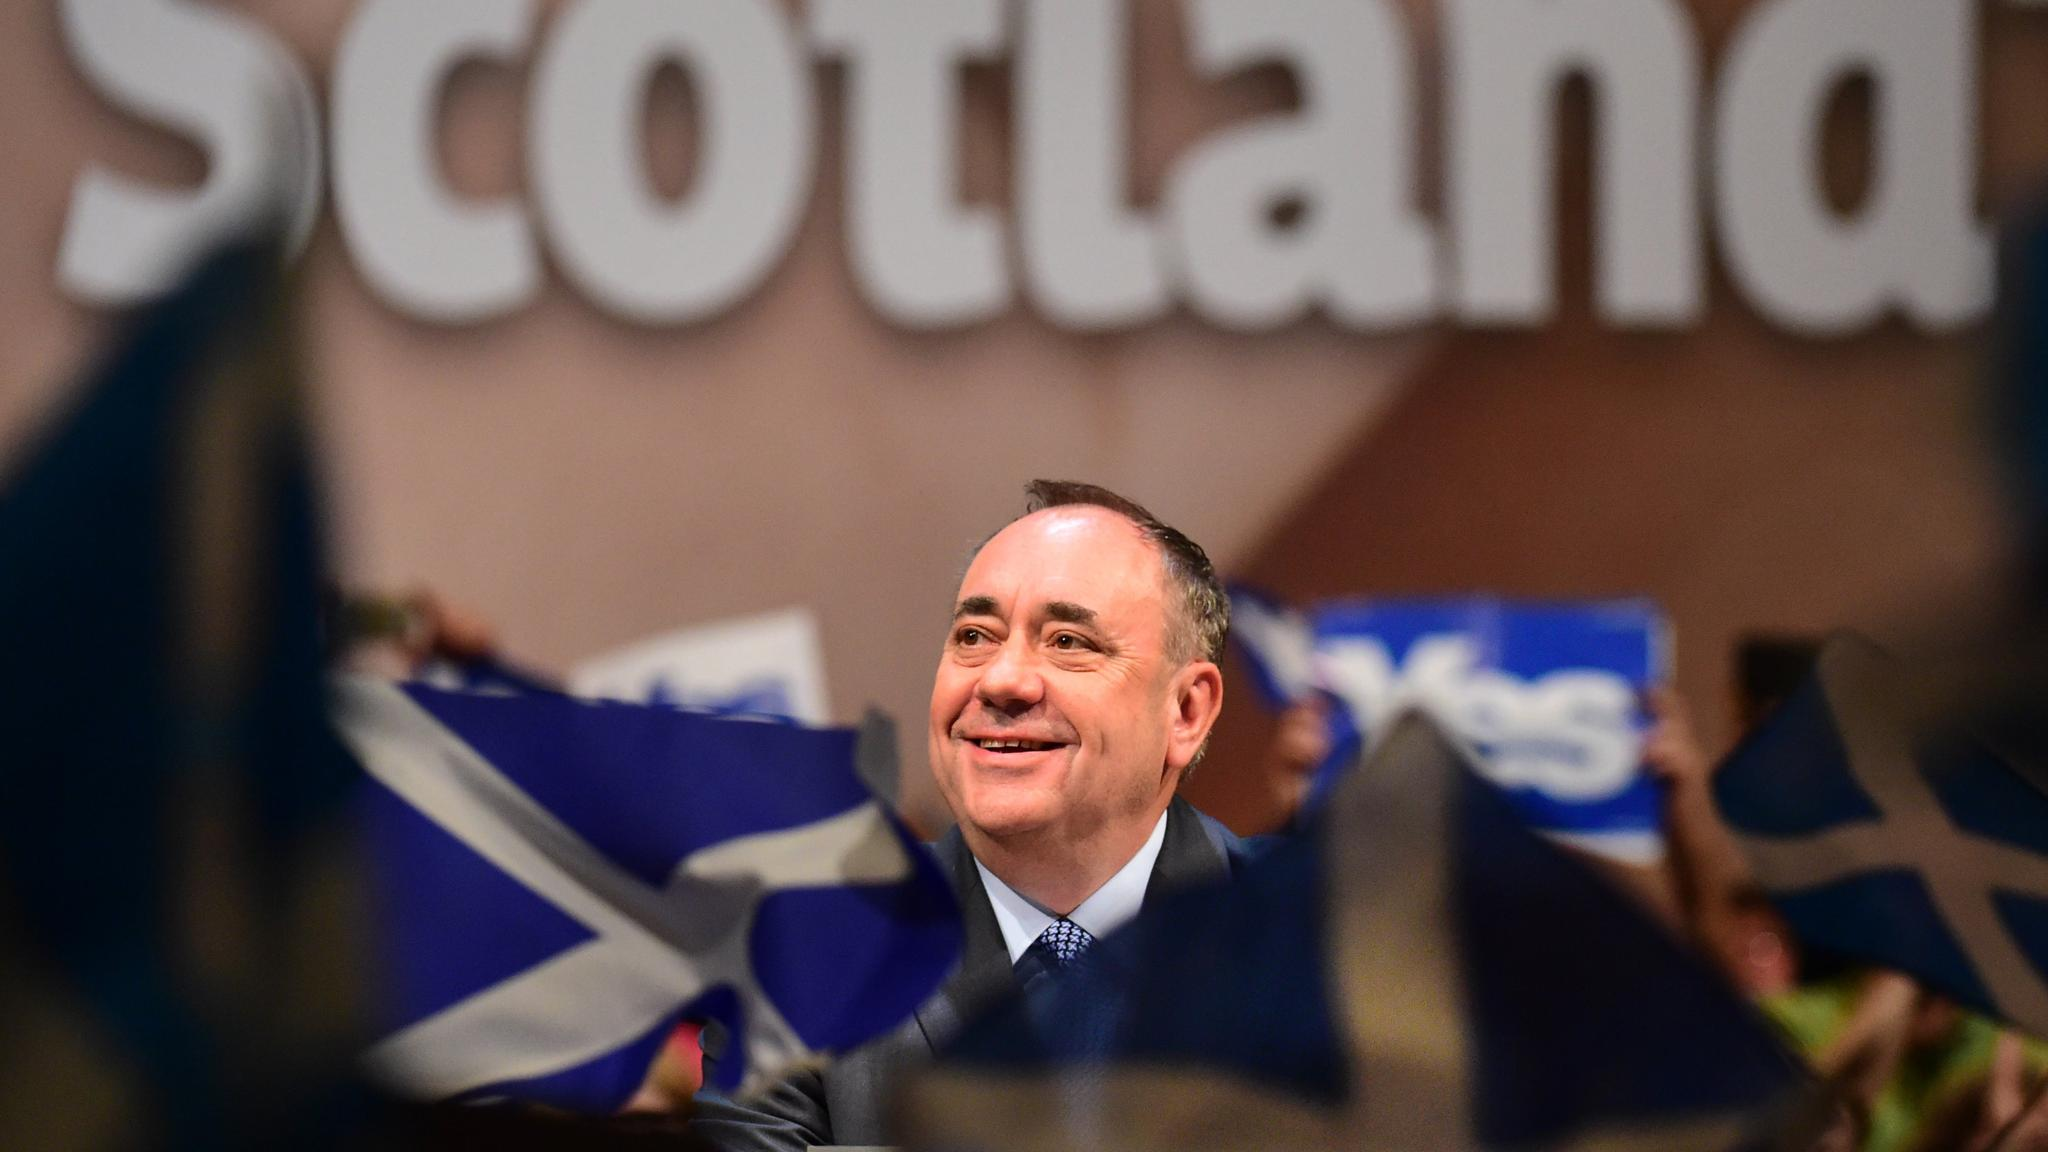 Salmond rallies supporters for 'exciting day' on eve of poll